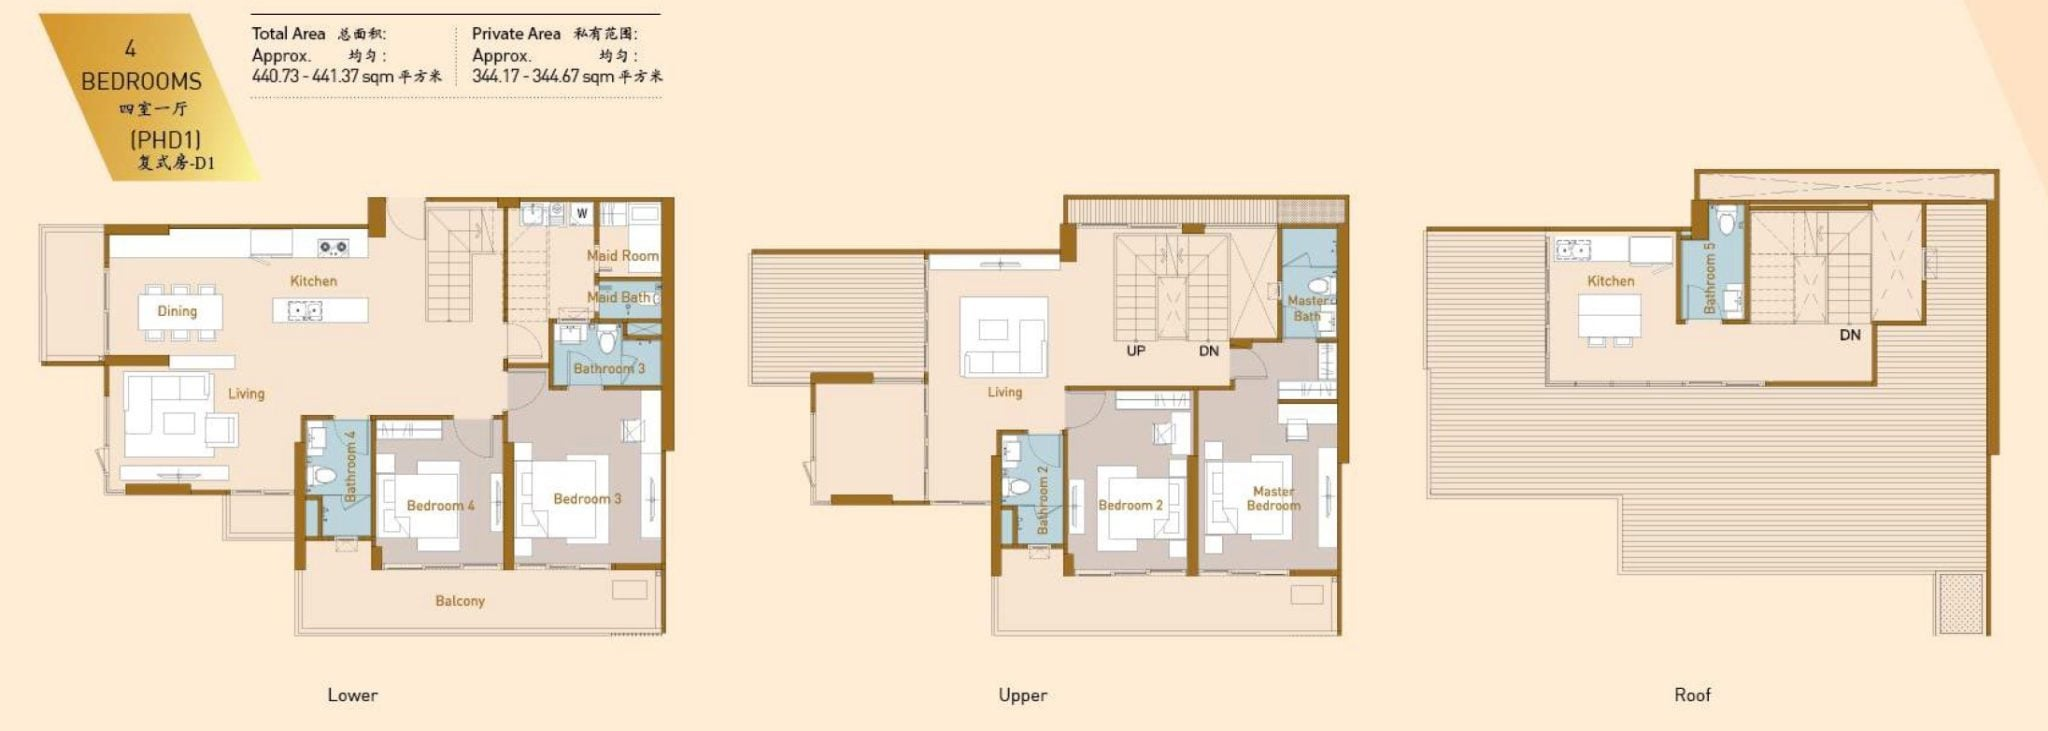 Royal Platinum Floor Plan 4BR Duplex full D1